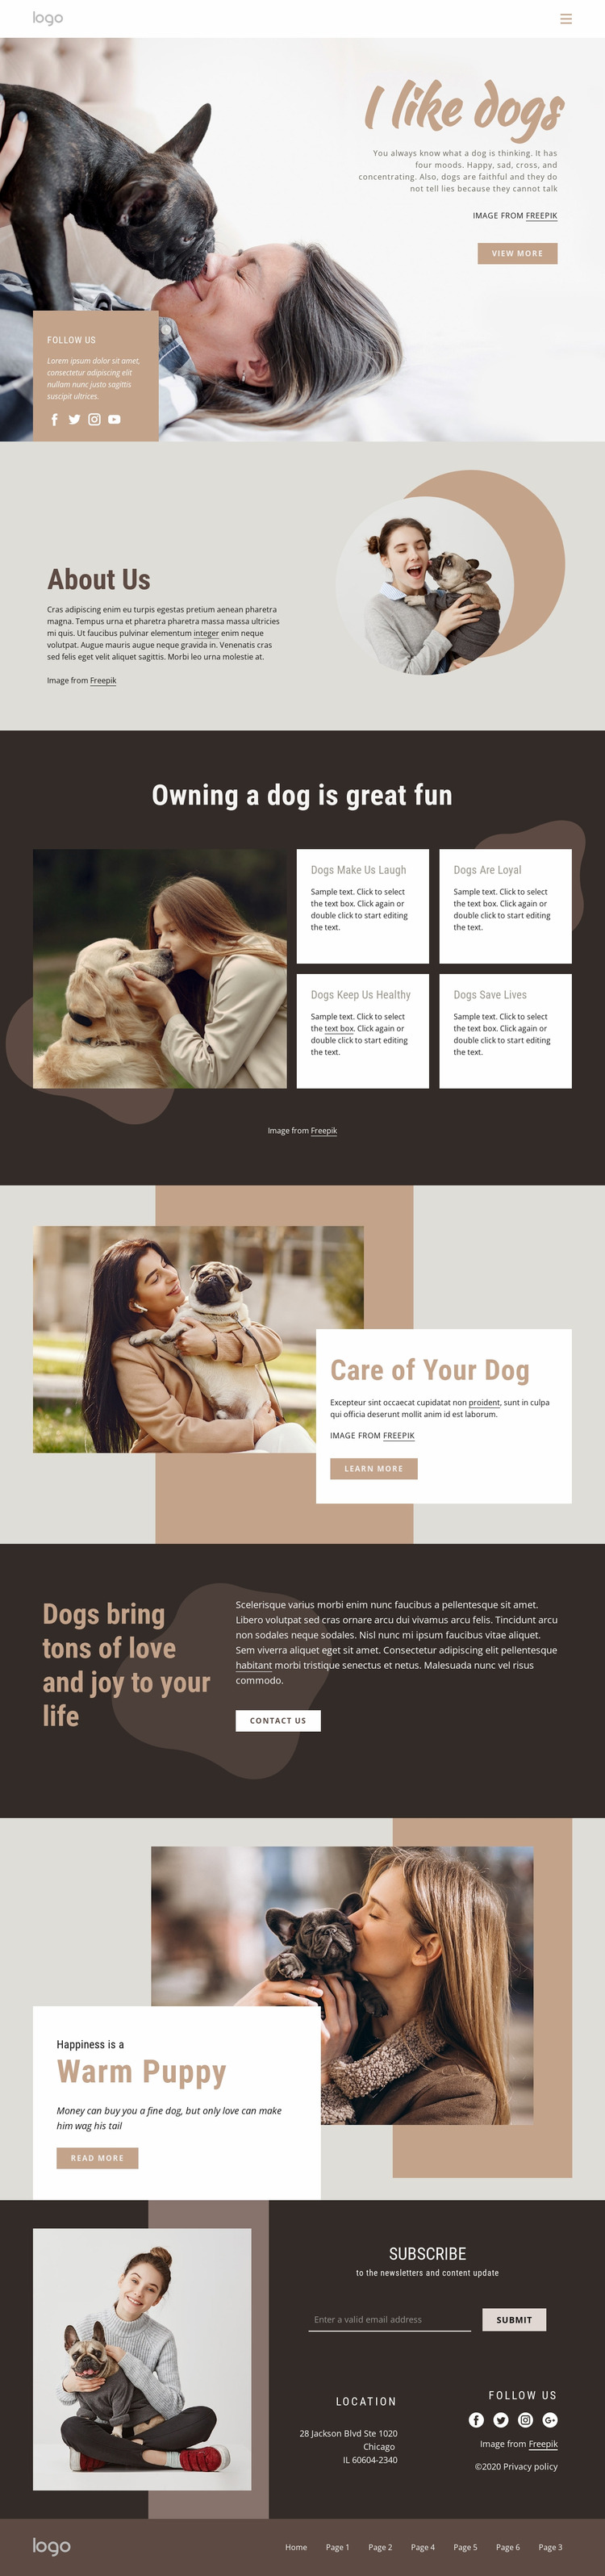 All about dogs WordPress Website Builder